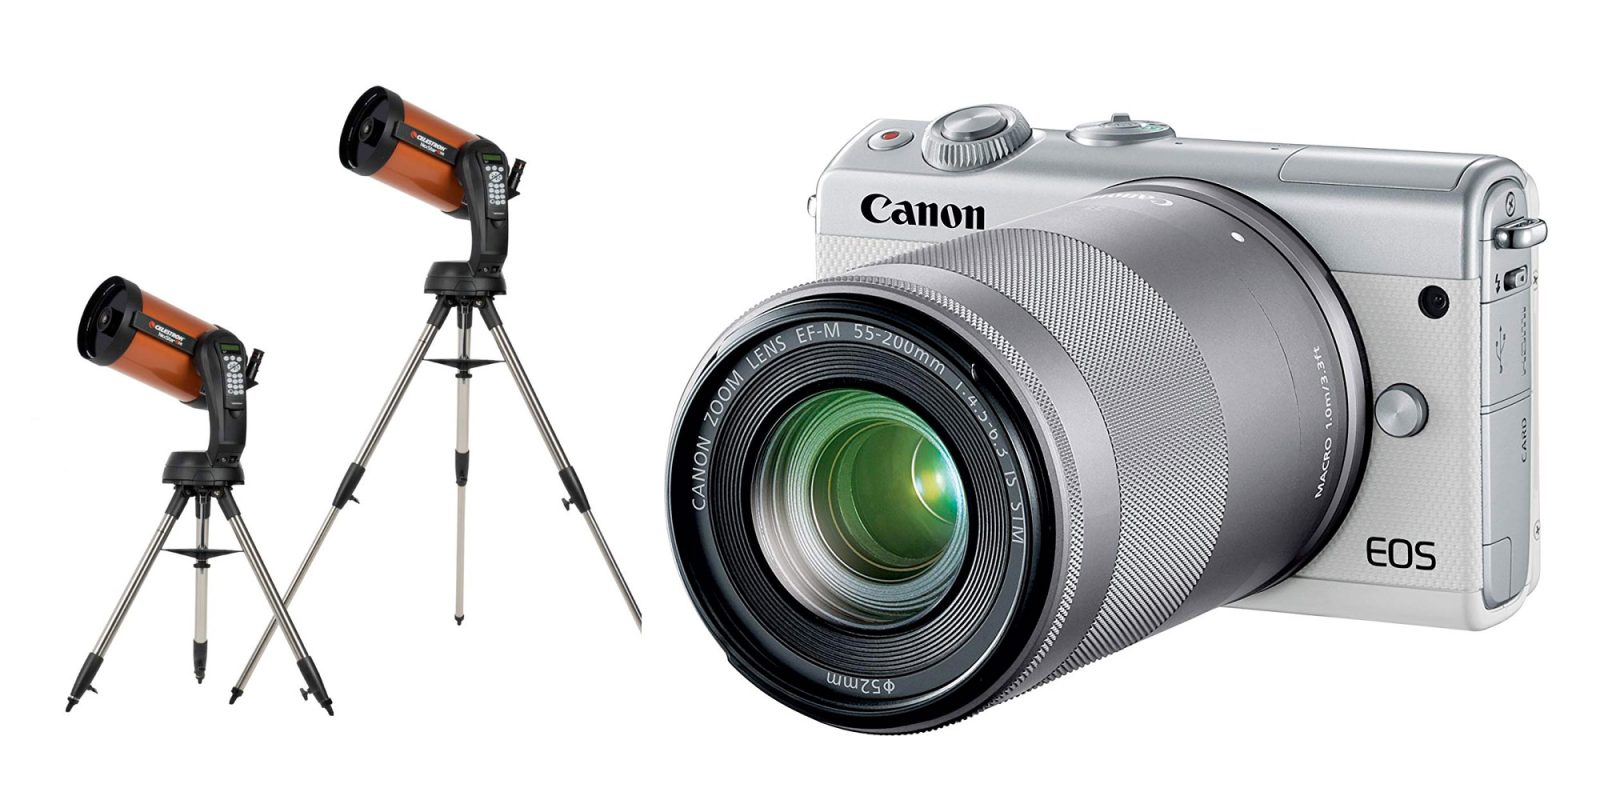 Capture it all with mirrorless cameras, telescopes, and more from $30